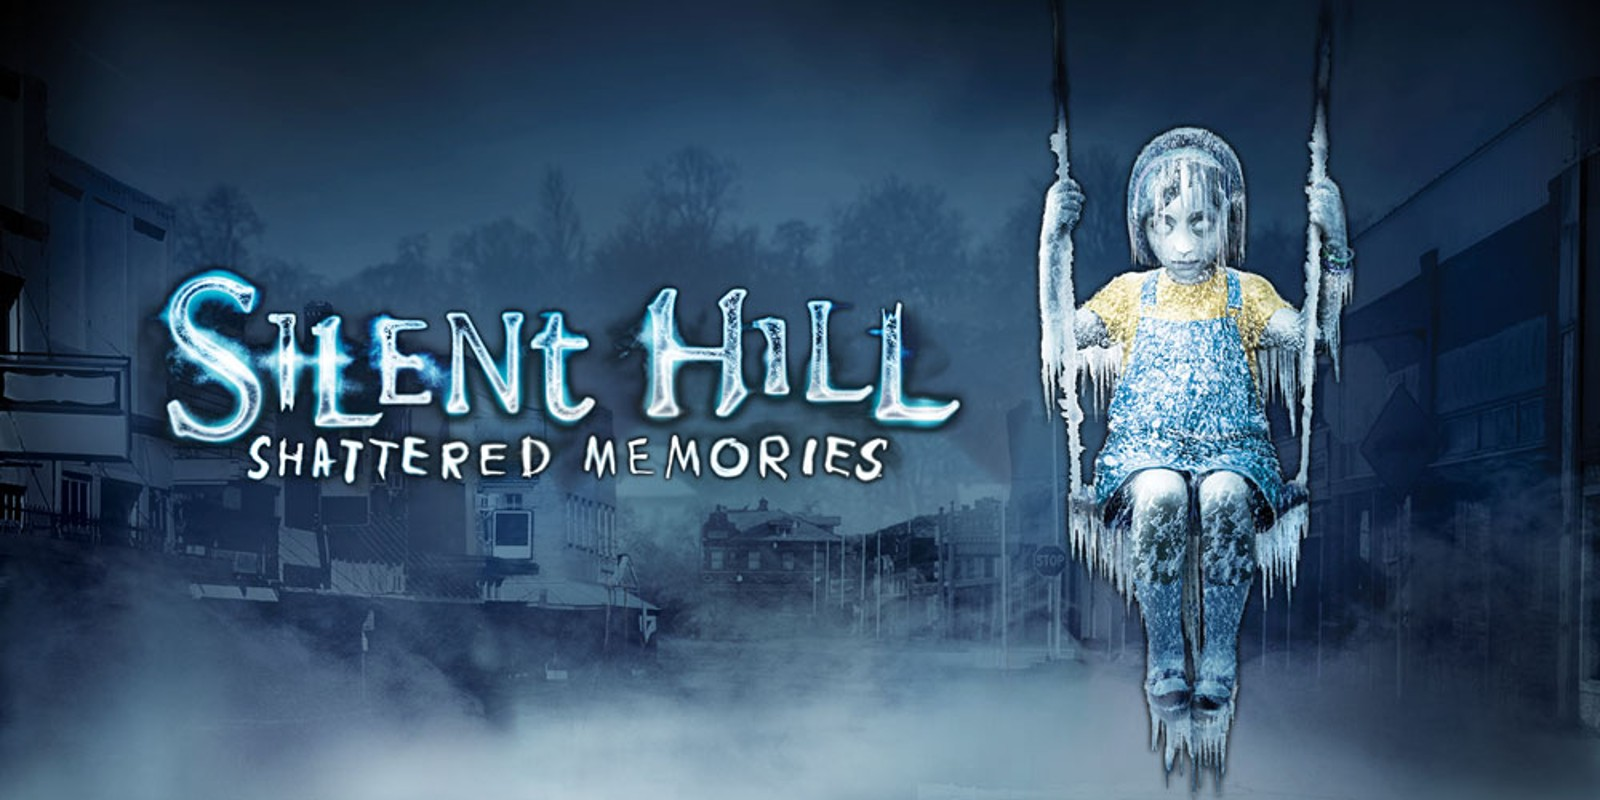 Mario Wallpaper Hd Silent Hill Shattered Memories Wii Games Nintendo